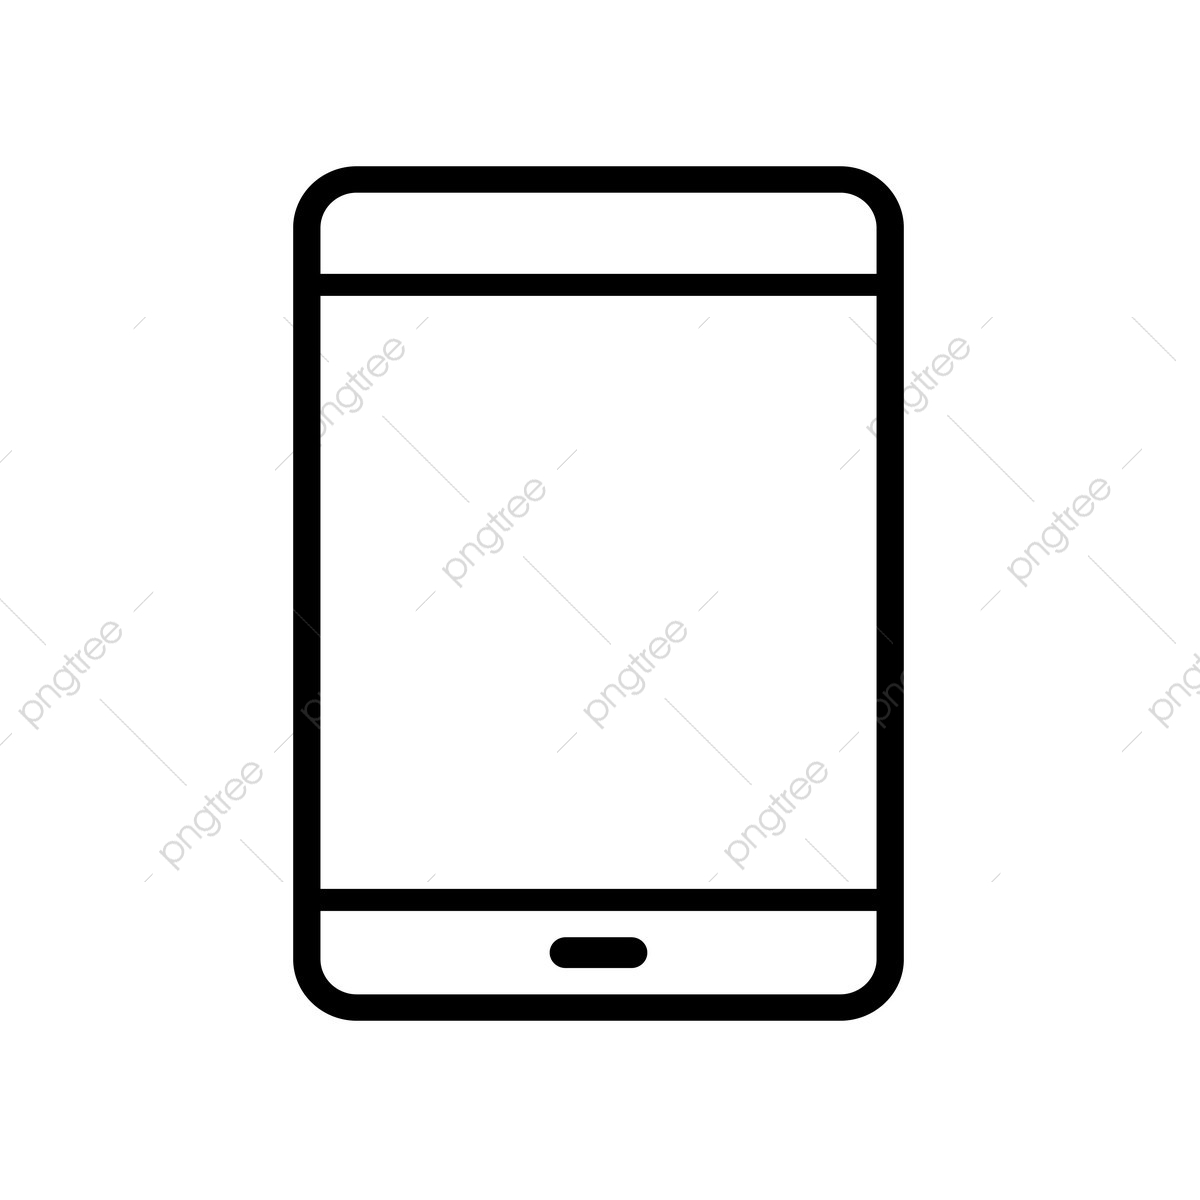 Smartphone Icon, App, Application, Business PNG and Vector.